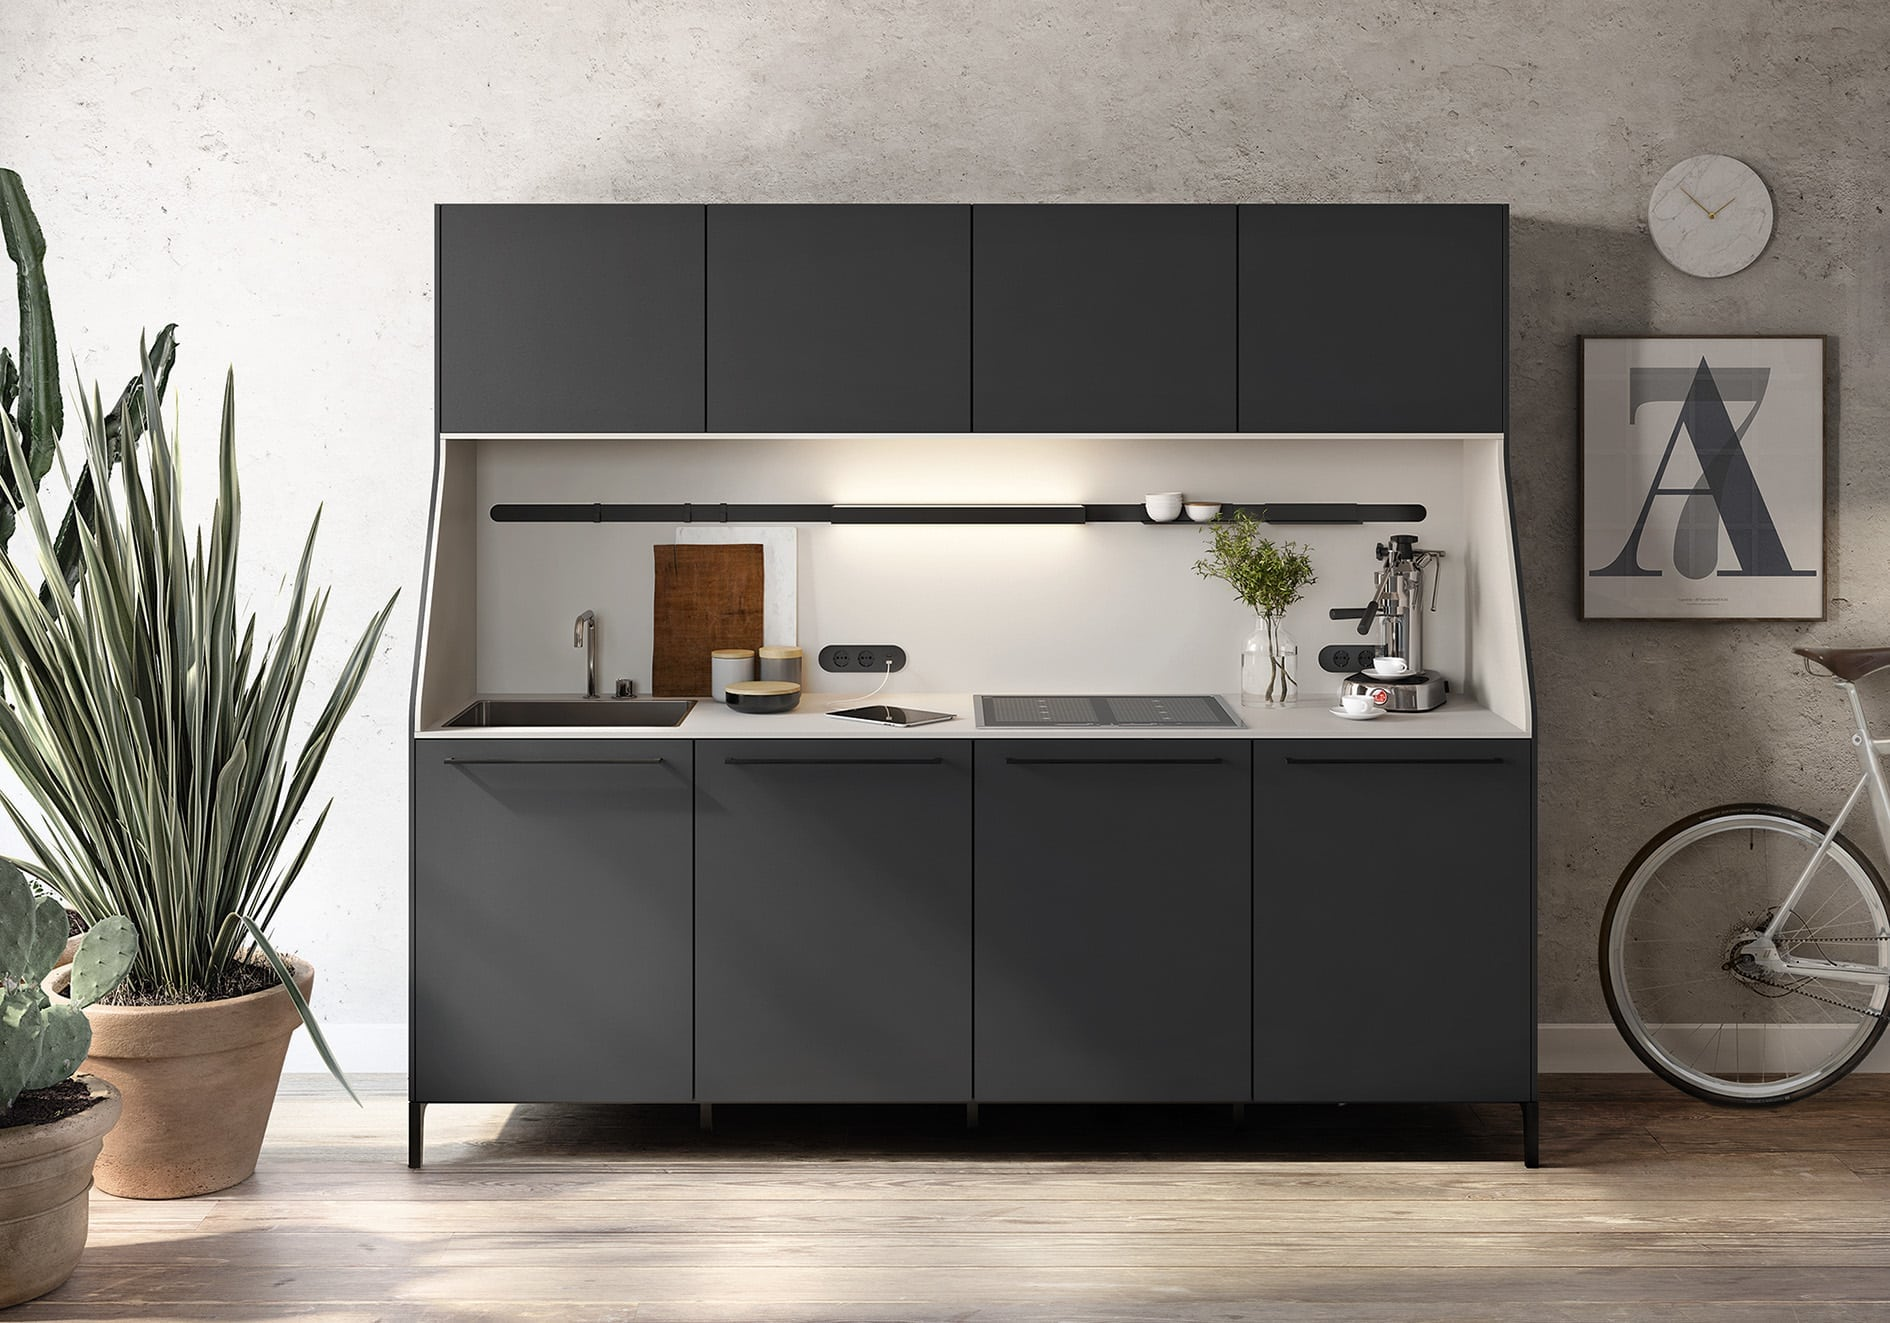 Siematic Chichester urban kitchen sideboard studio flat